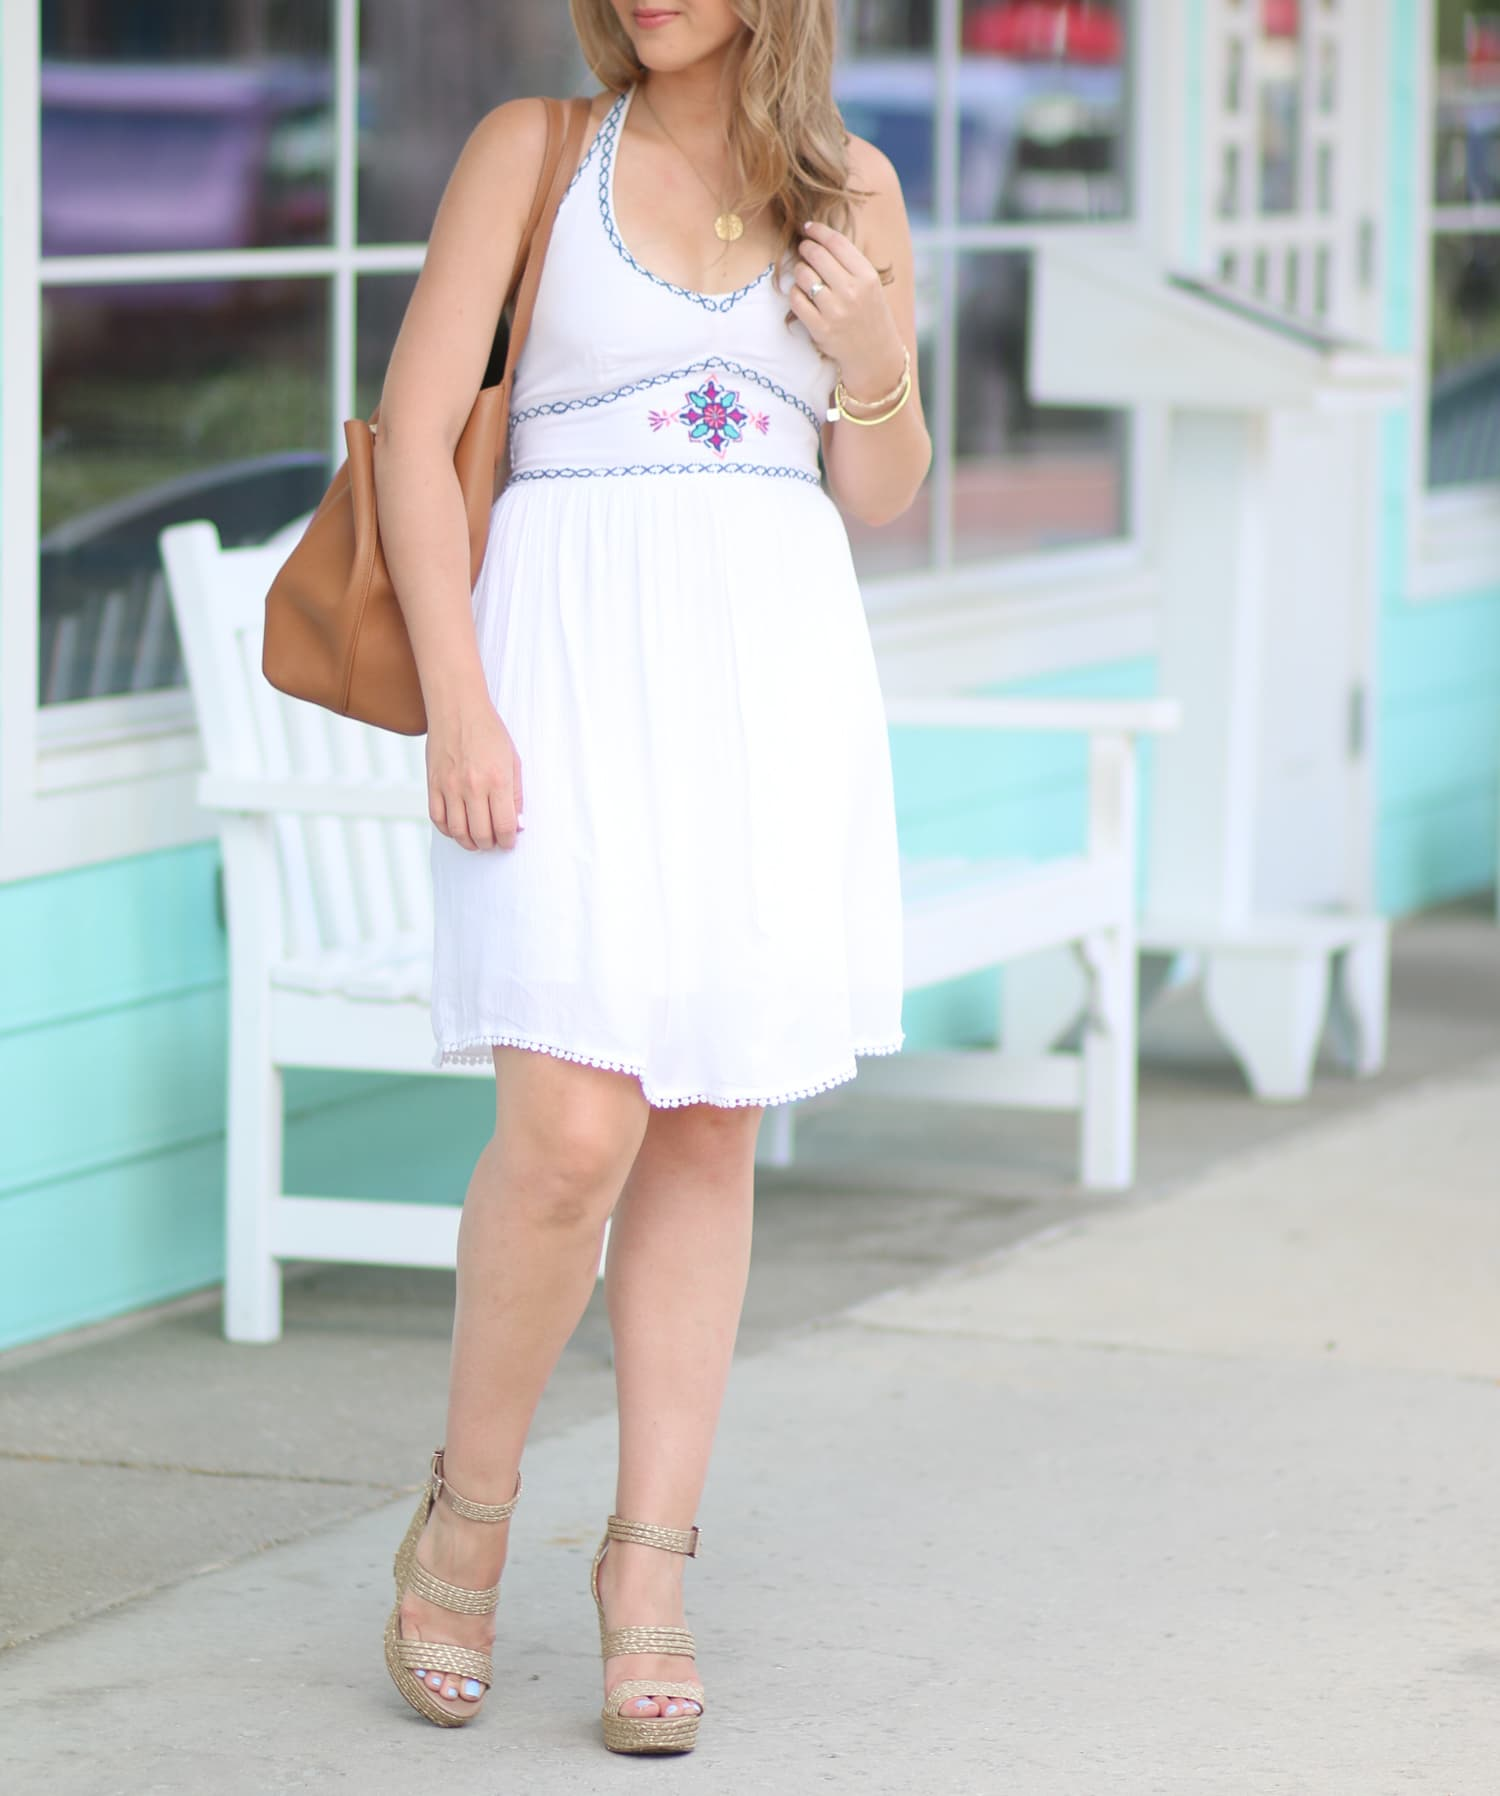 white-hollister-halter-dress-raffia-wedges-ashley-brooke-nicholas-1597